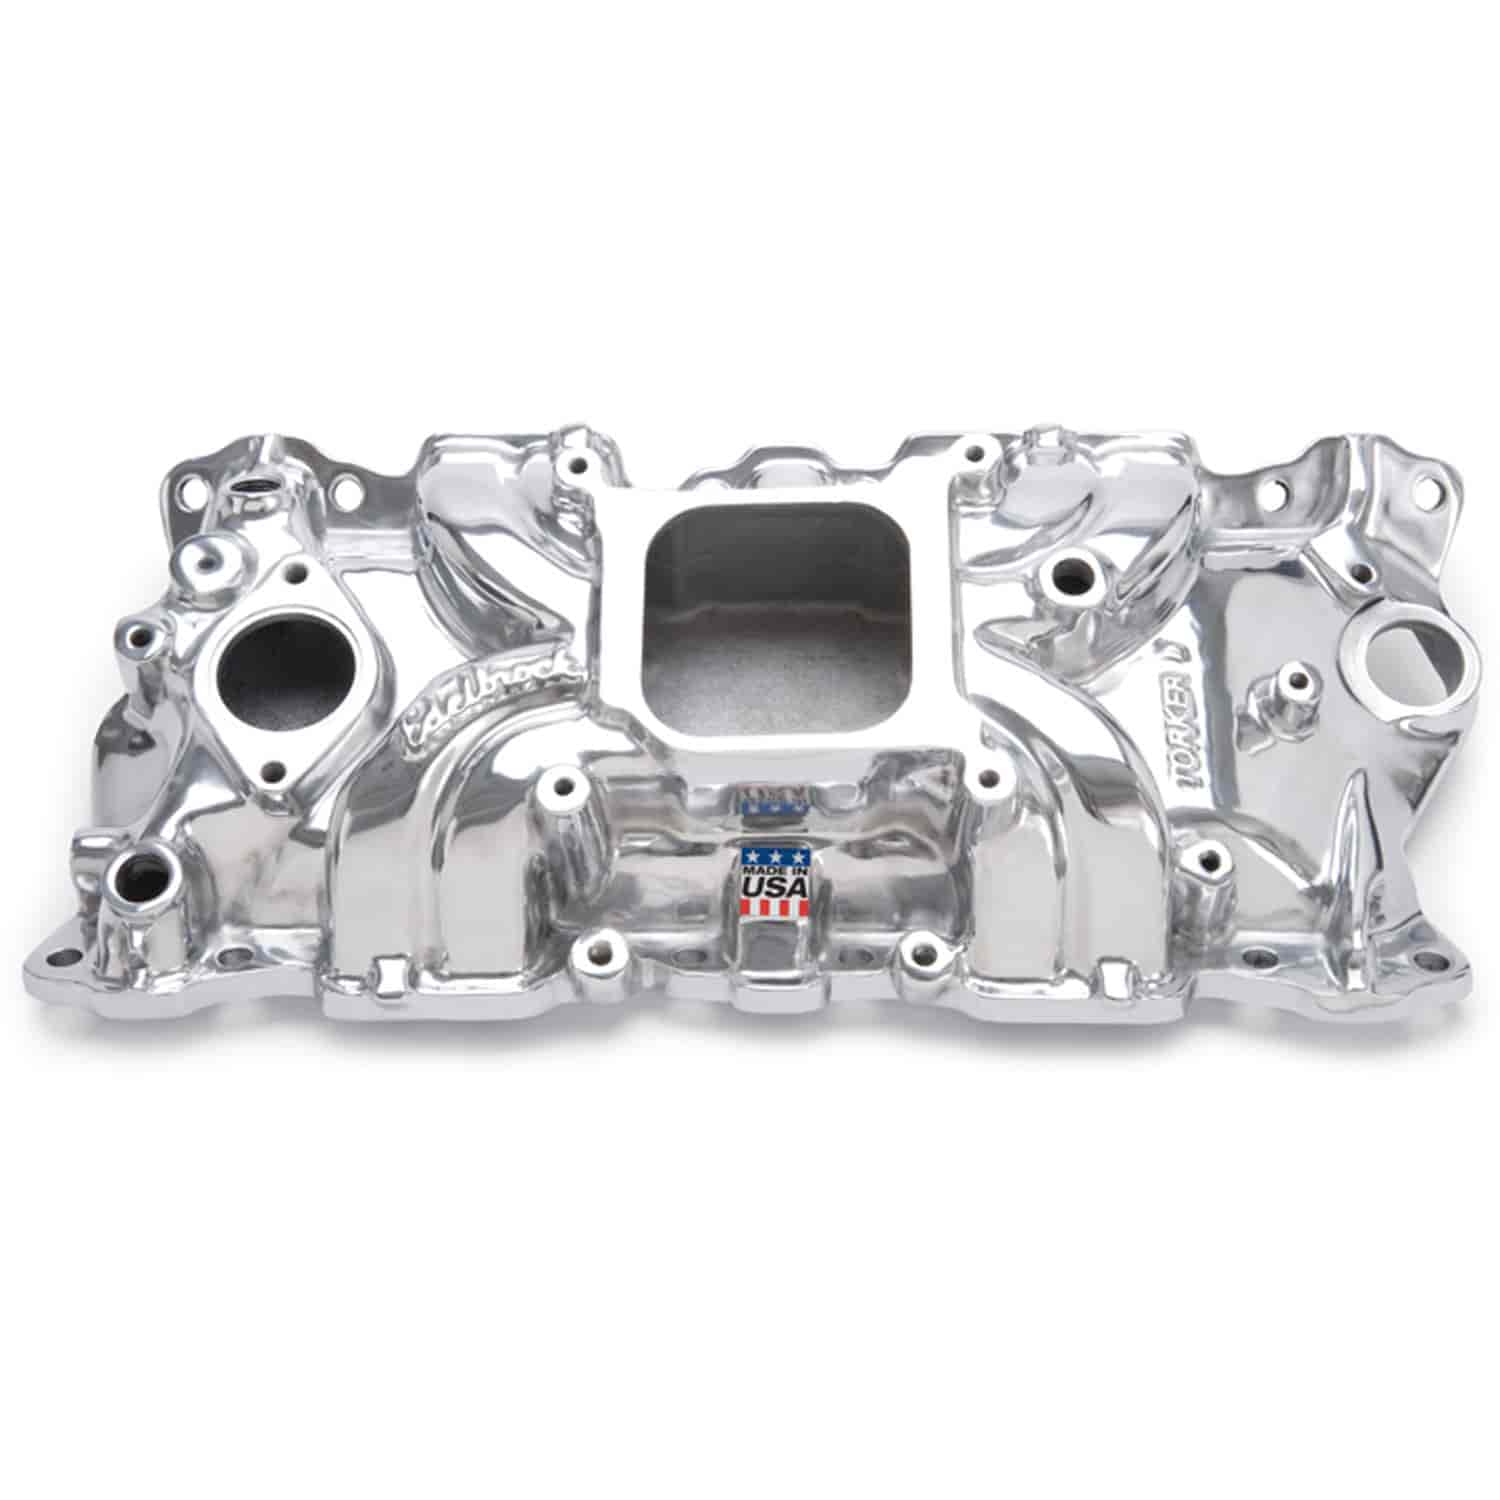 Edelbrock 50011 - Edelbrock Torker-II Manifolds and Kits for Chevy